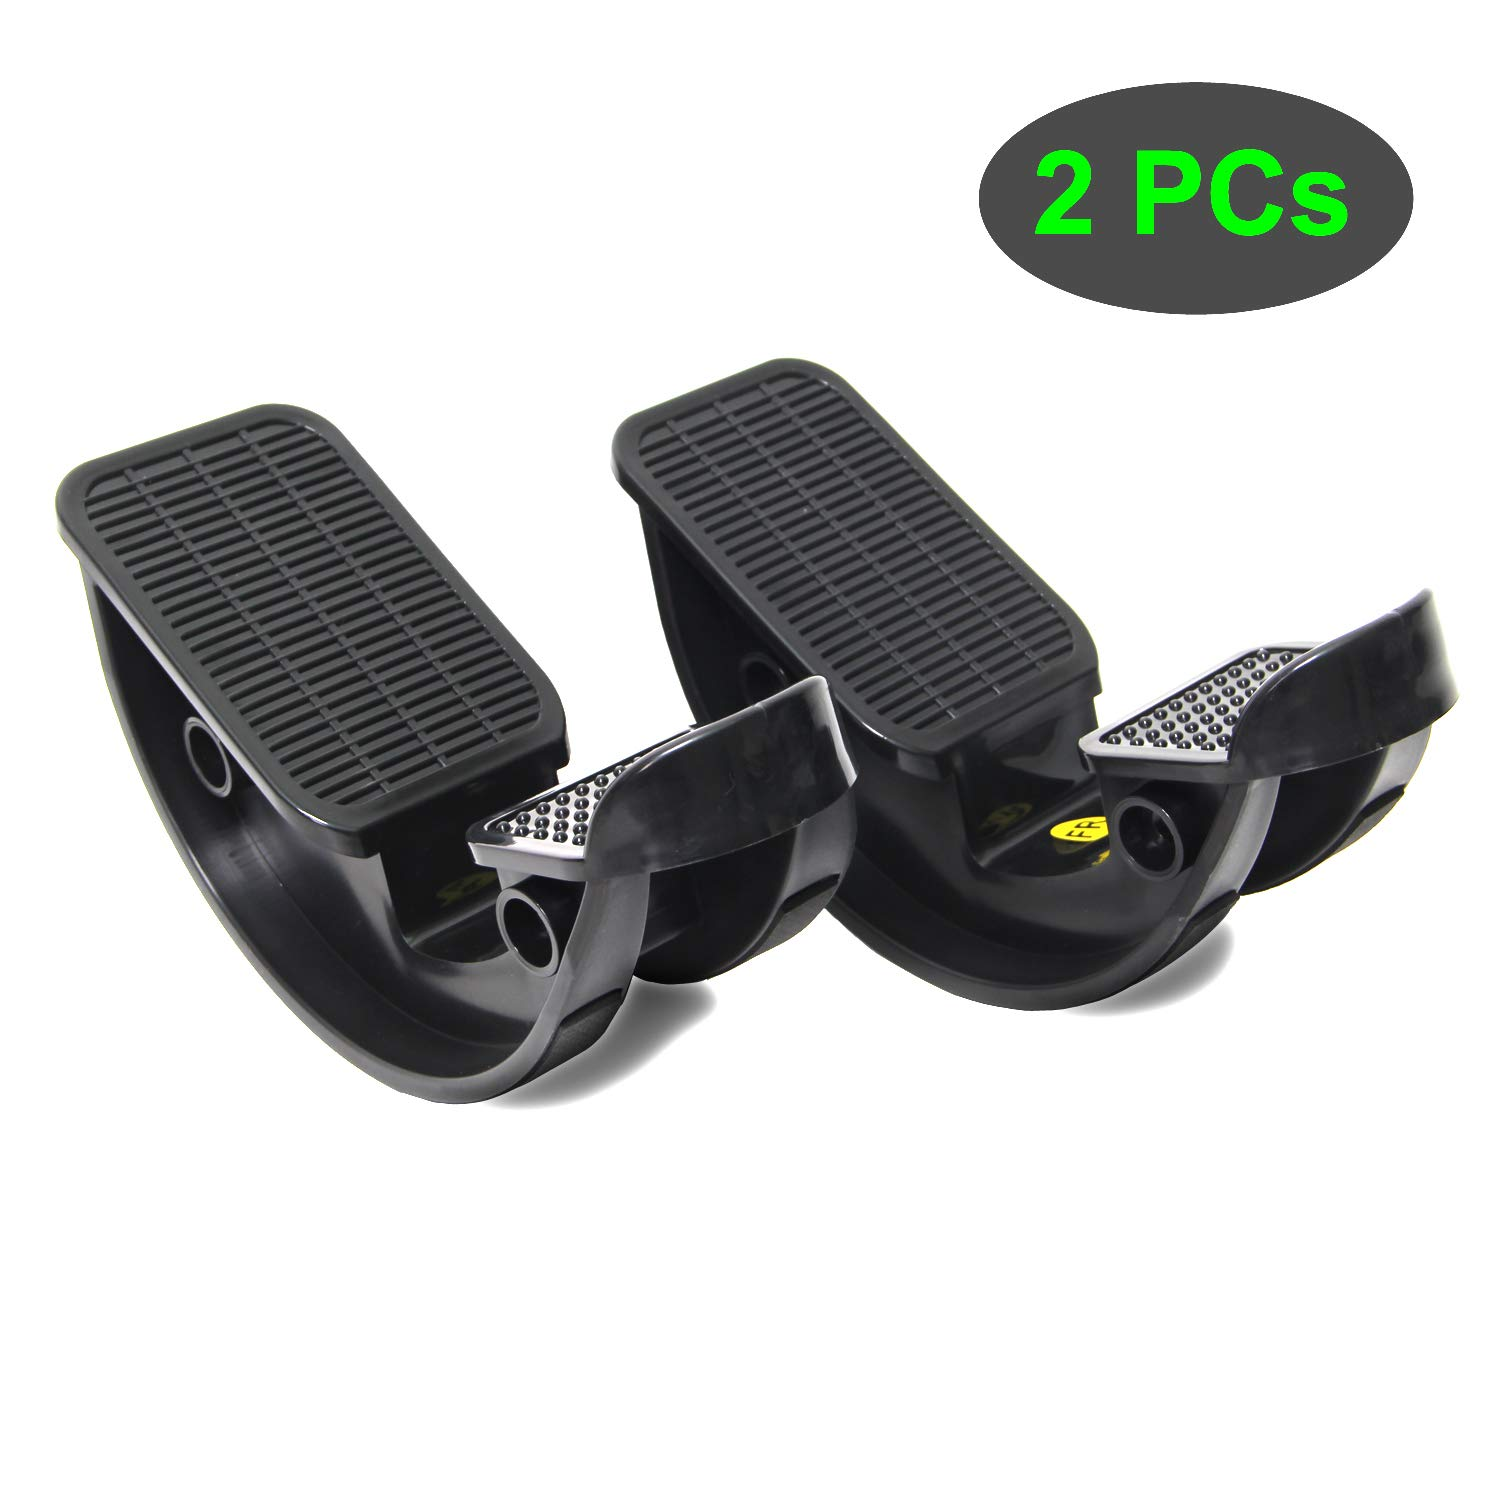 TODO Foot Rocker Calf Stretcher for Pain Relief and Muscle Stretch 2 PCS (Black)